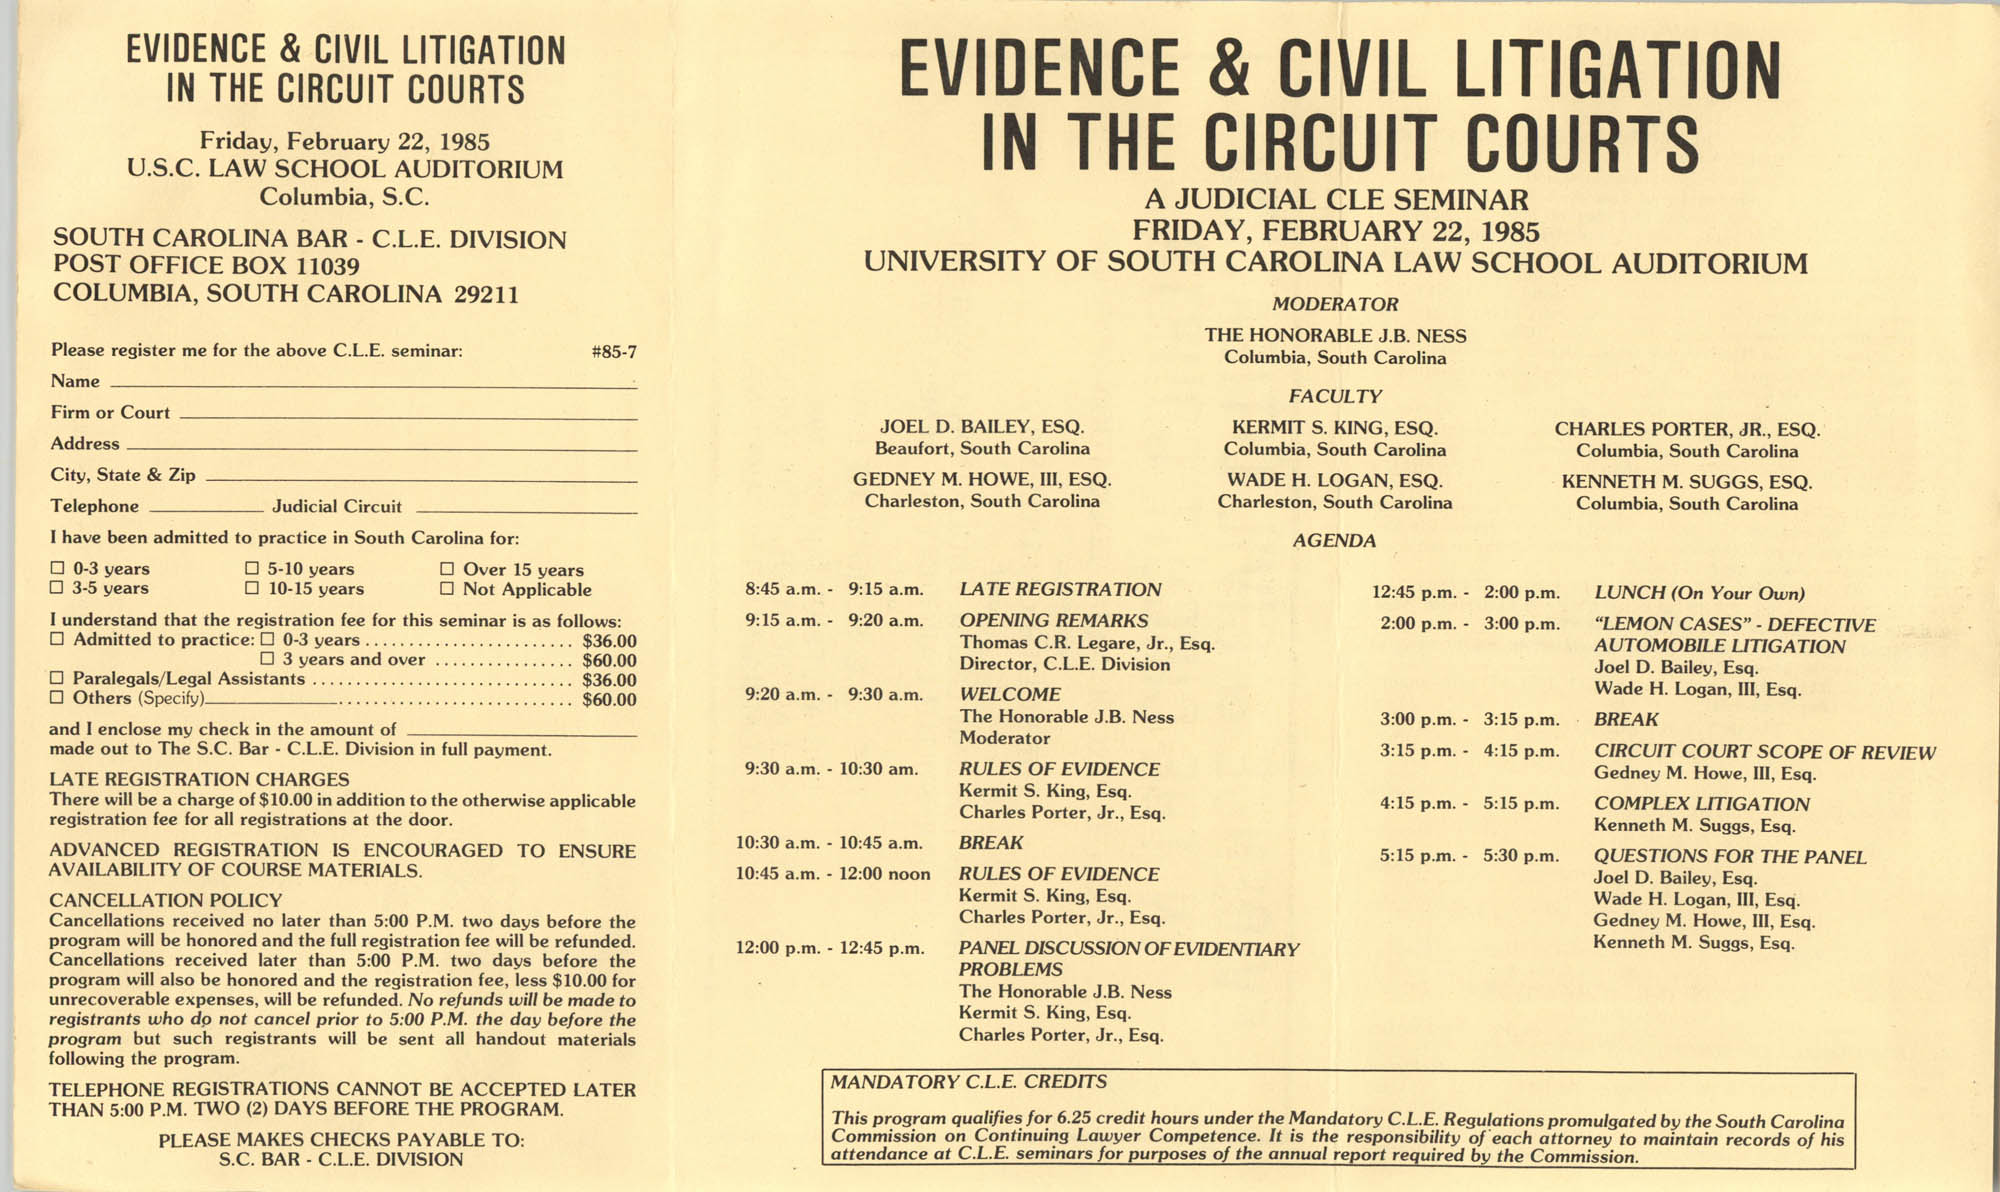 Evidence & Civil Litigation in the Circuit Courts, Continuing Judicial Education Seminar Pamphlet, February 22, 1985